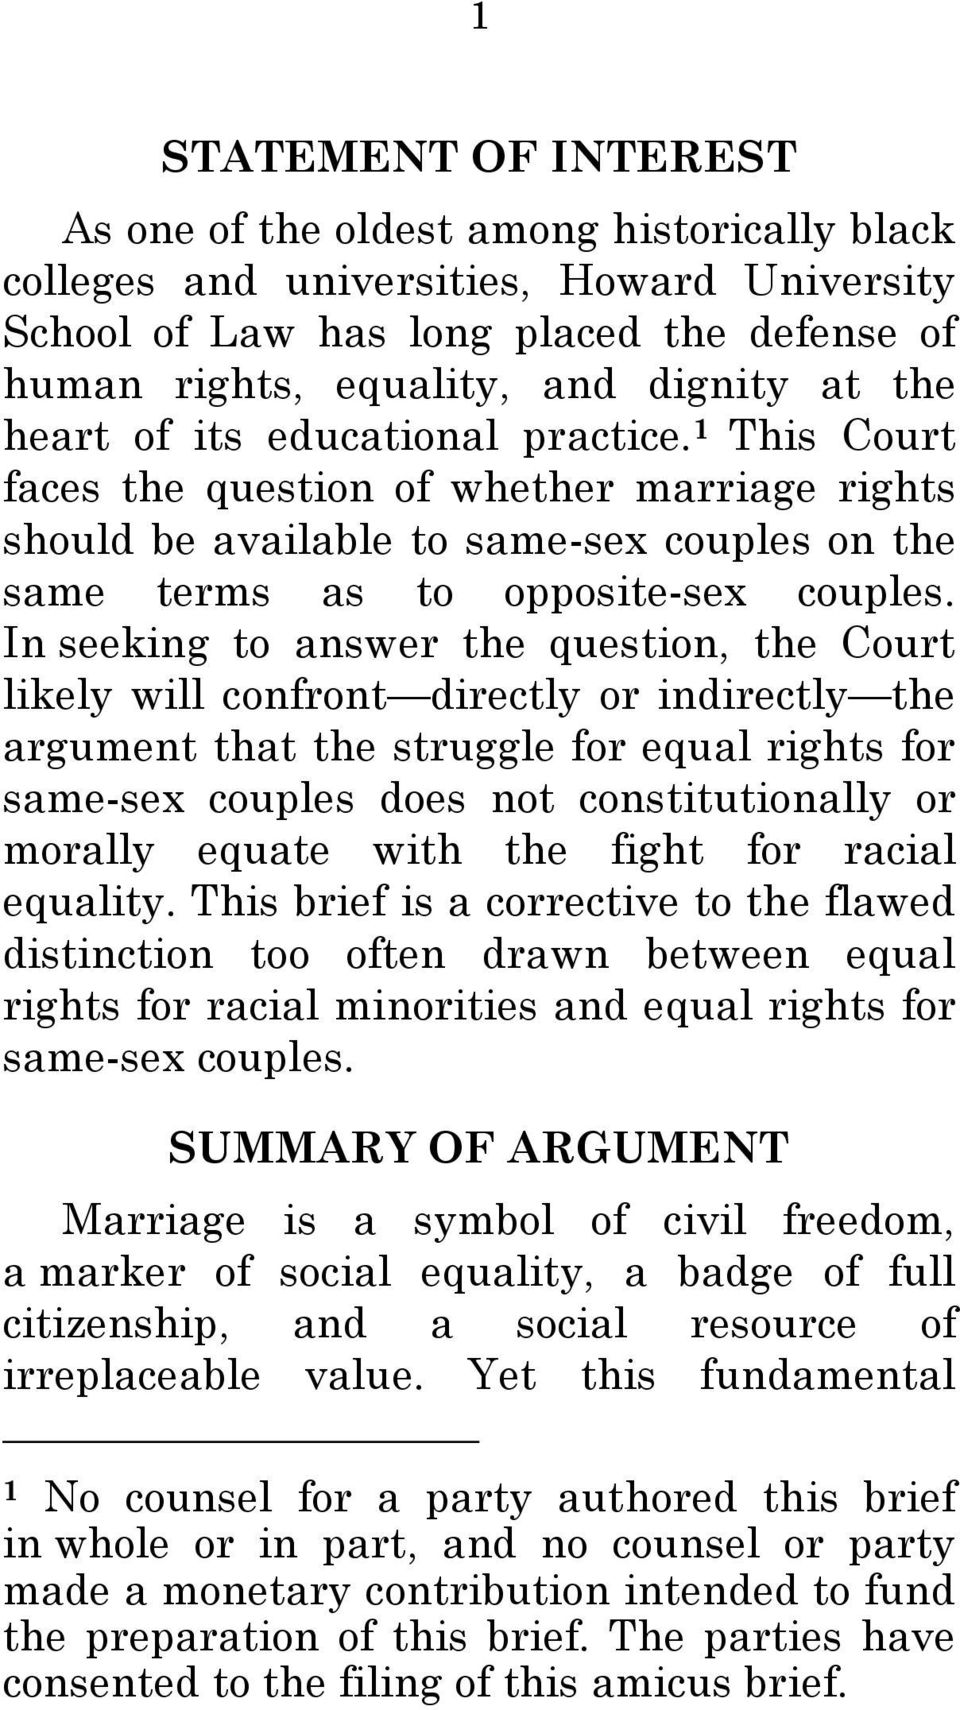 In seeking to answer the question, the Court likely will confront directly or indirectly the argument that the struggle for equal rights for same-sex couples does not constitutionally or morally